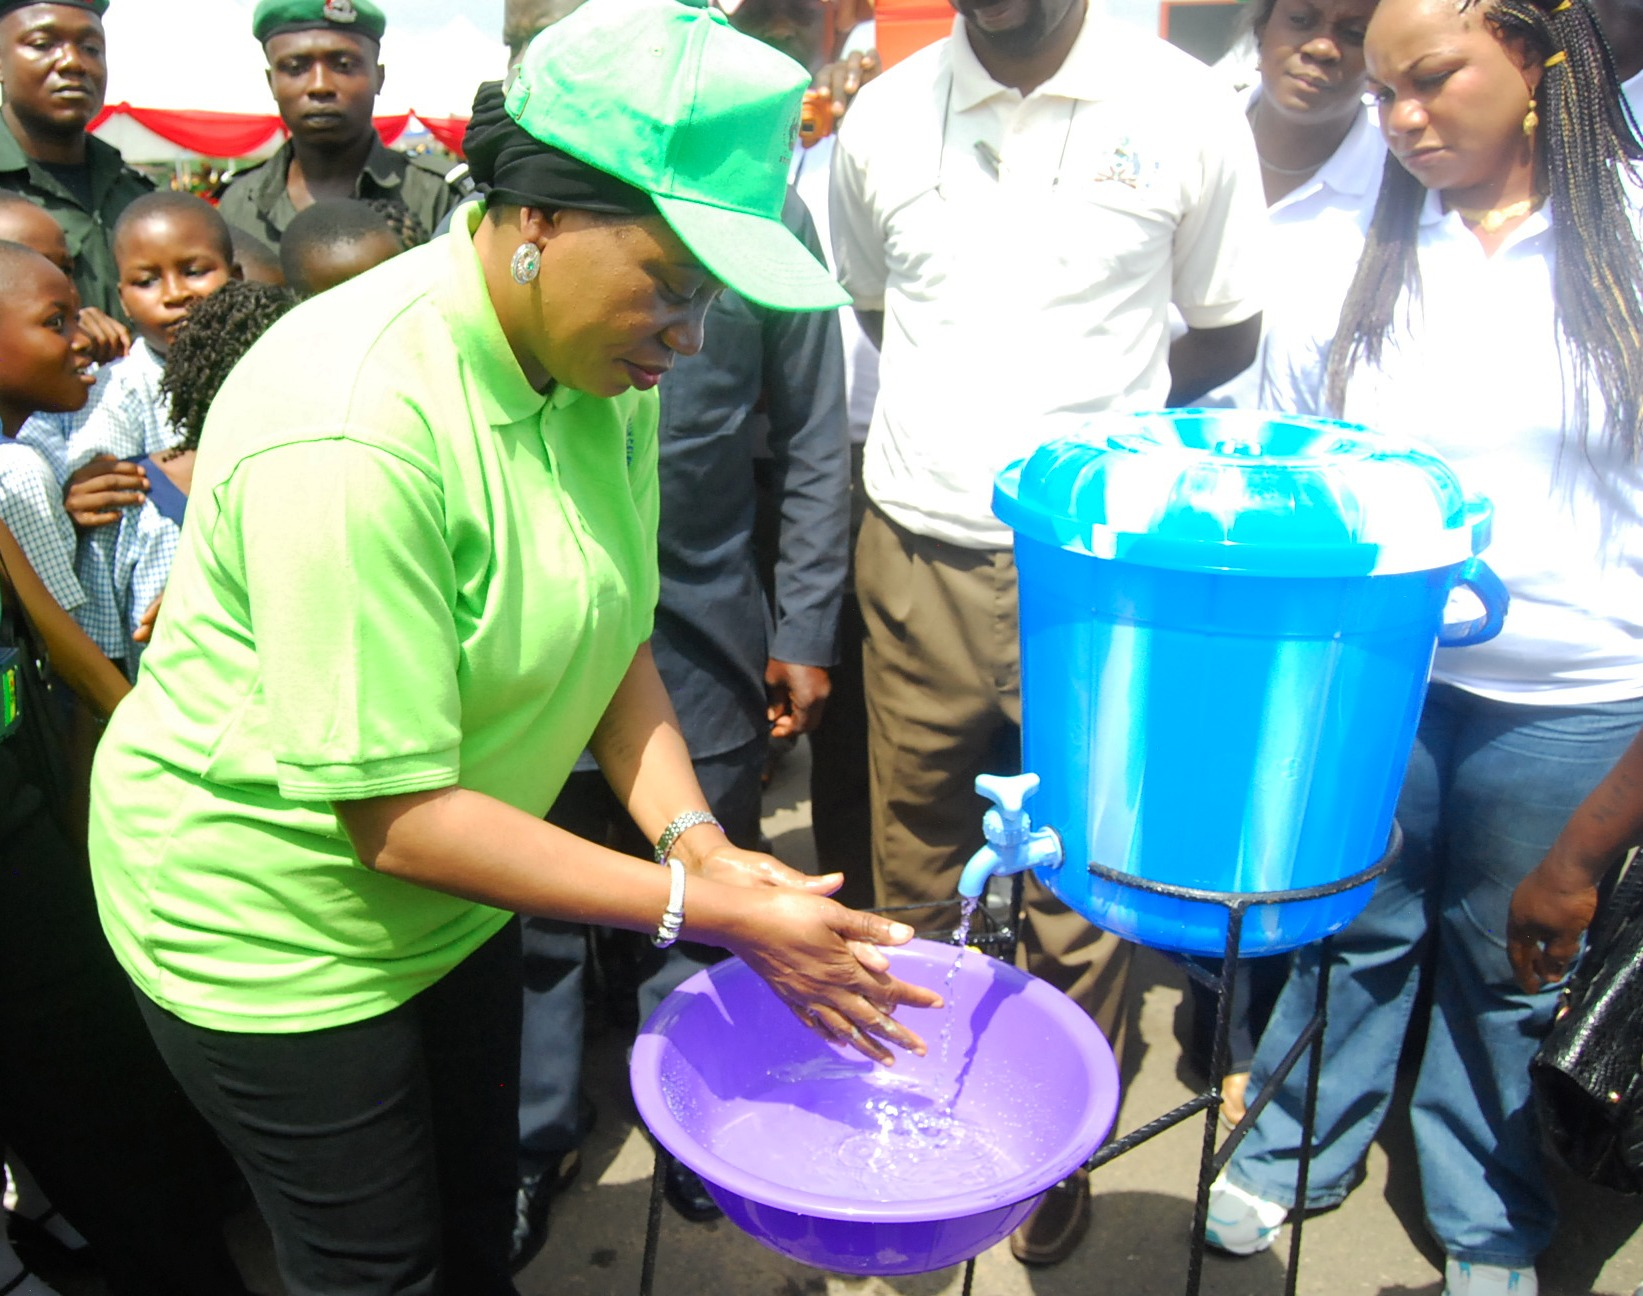 UNICEF Ambassador on Community Led Total Sanitation (CLTS), Mrs Sherifat Aregbesola, demonstrating hand washing. With them are former Special Adviser to Osun Governor on Rural Development and  Community Affairs, Mr kunle Ige and former Commissioner for Environment in Osun, Prof. (Mrs) Olubukola Oyawoye, during the recent 2014 Global hand washing Day celebration in Osogbo, the Sate of Osun.